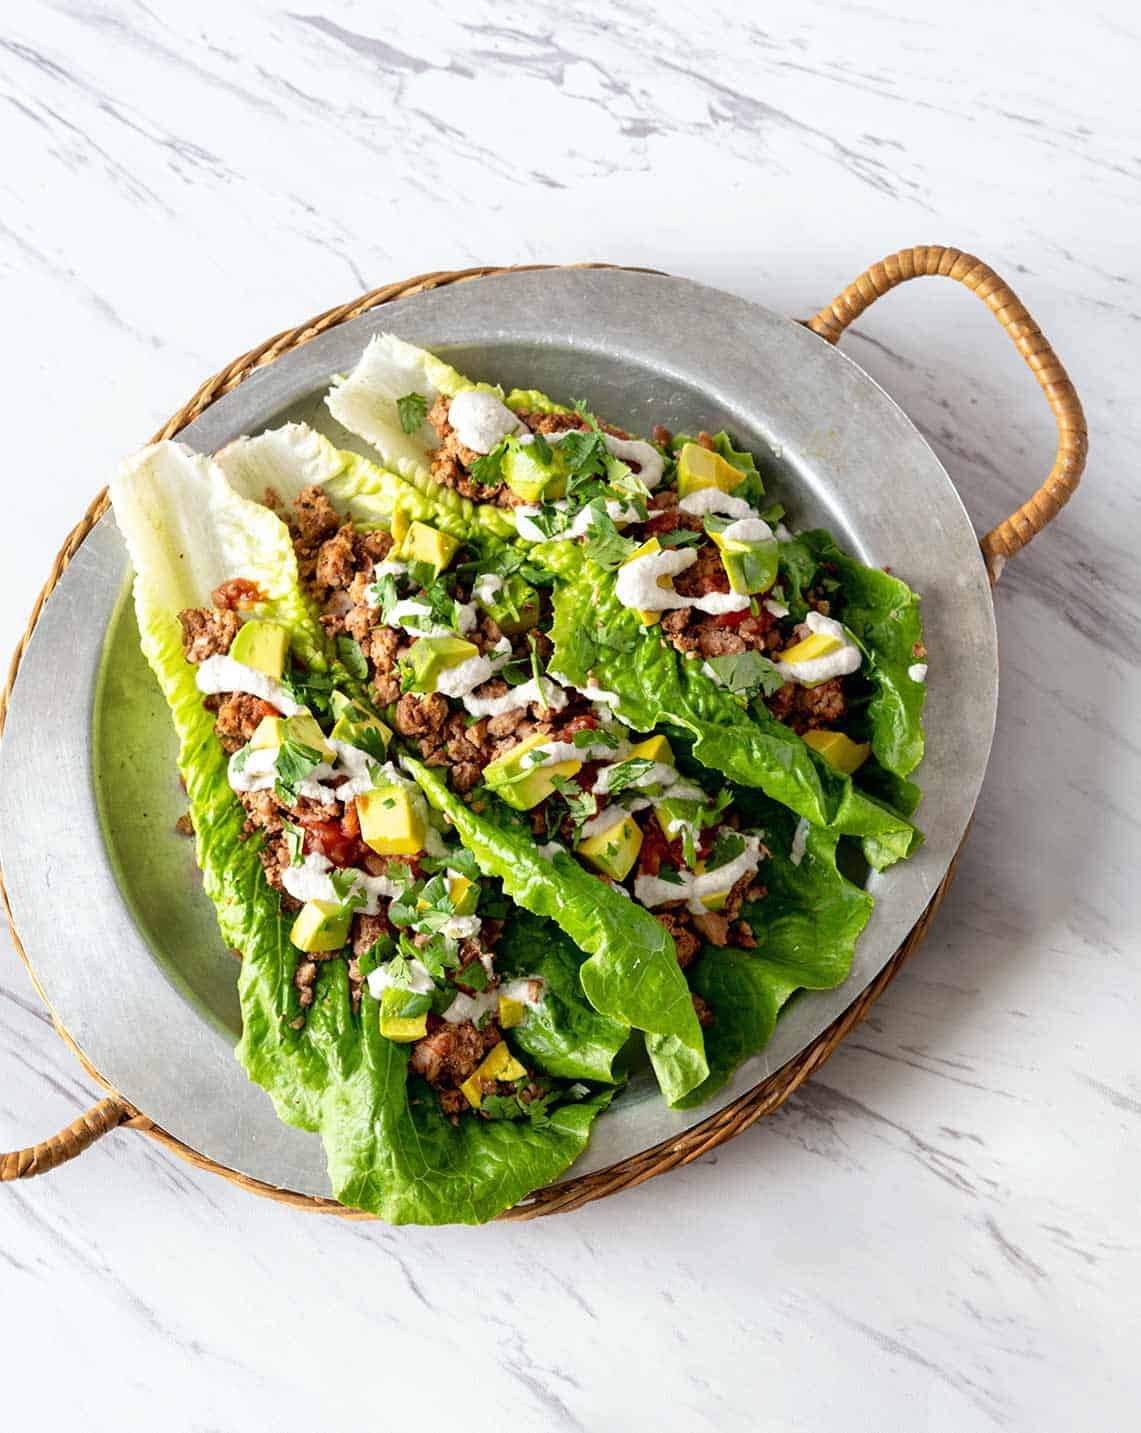 Image of pinto pecan lettuce boats on a metal tray with rattan handles on marble background